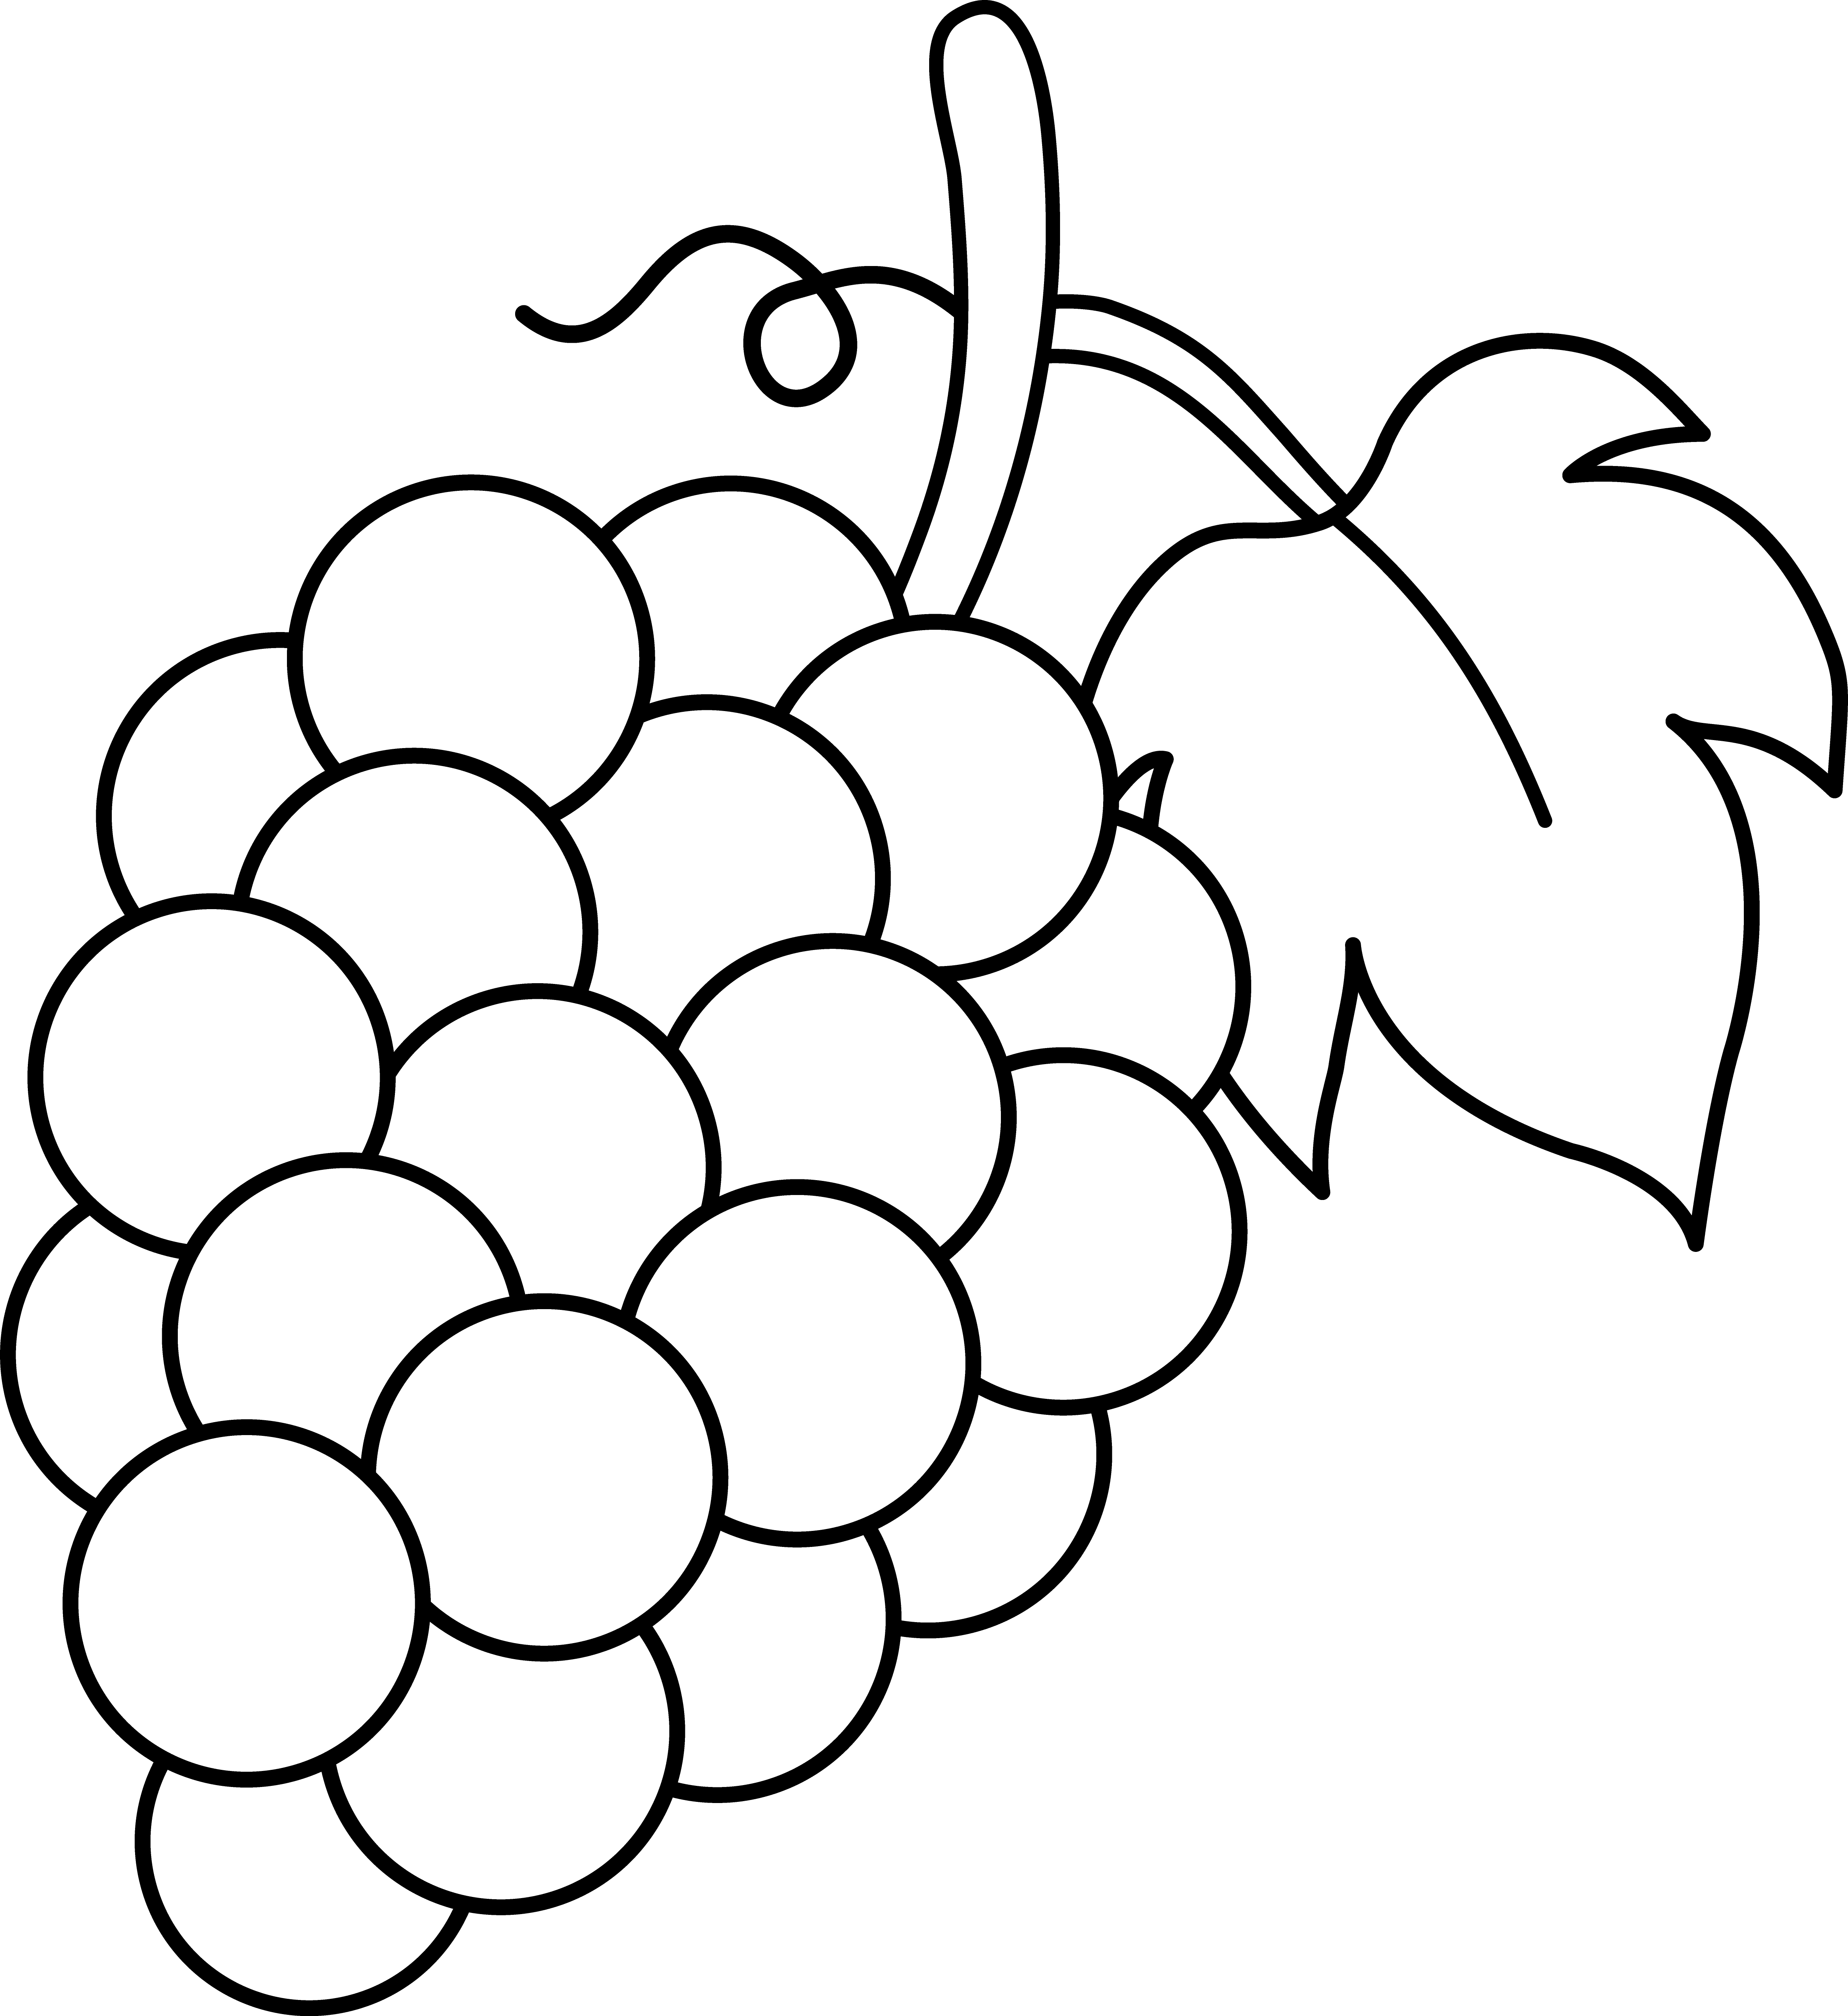 how to draw a grape grapevine ink sketch stock vector art more images of draw how to a grape